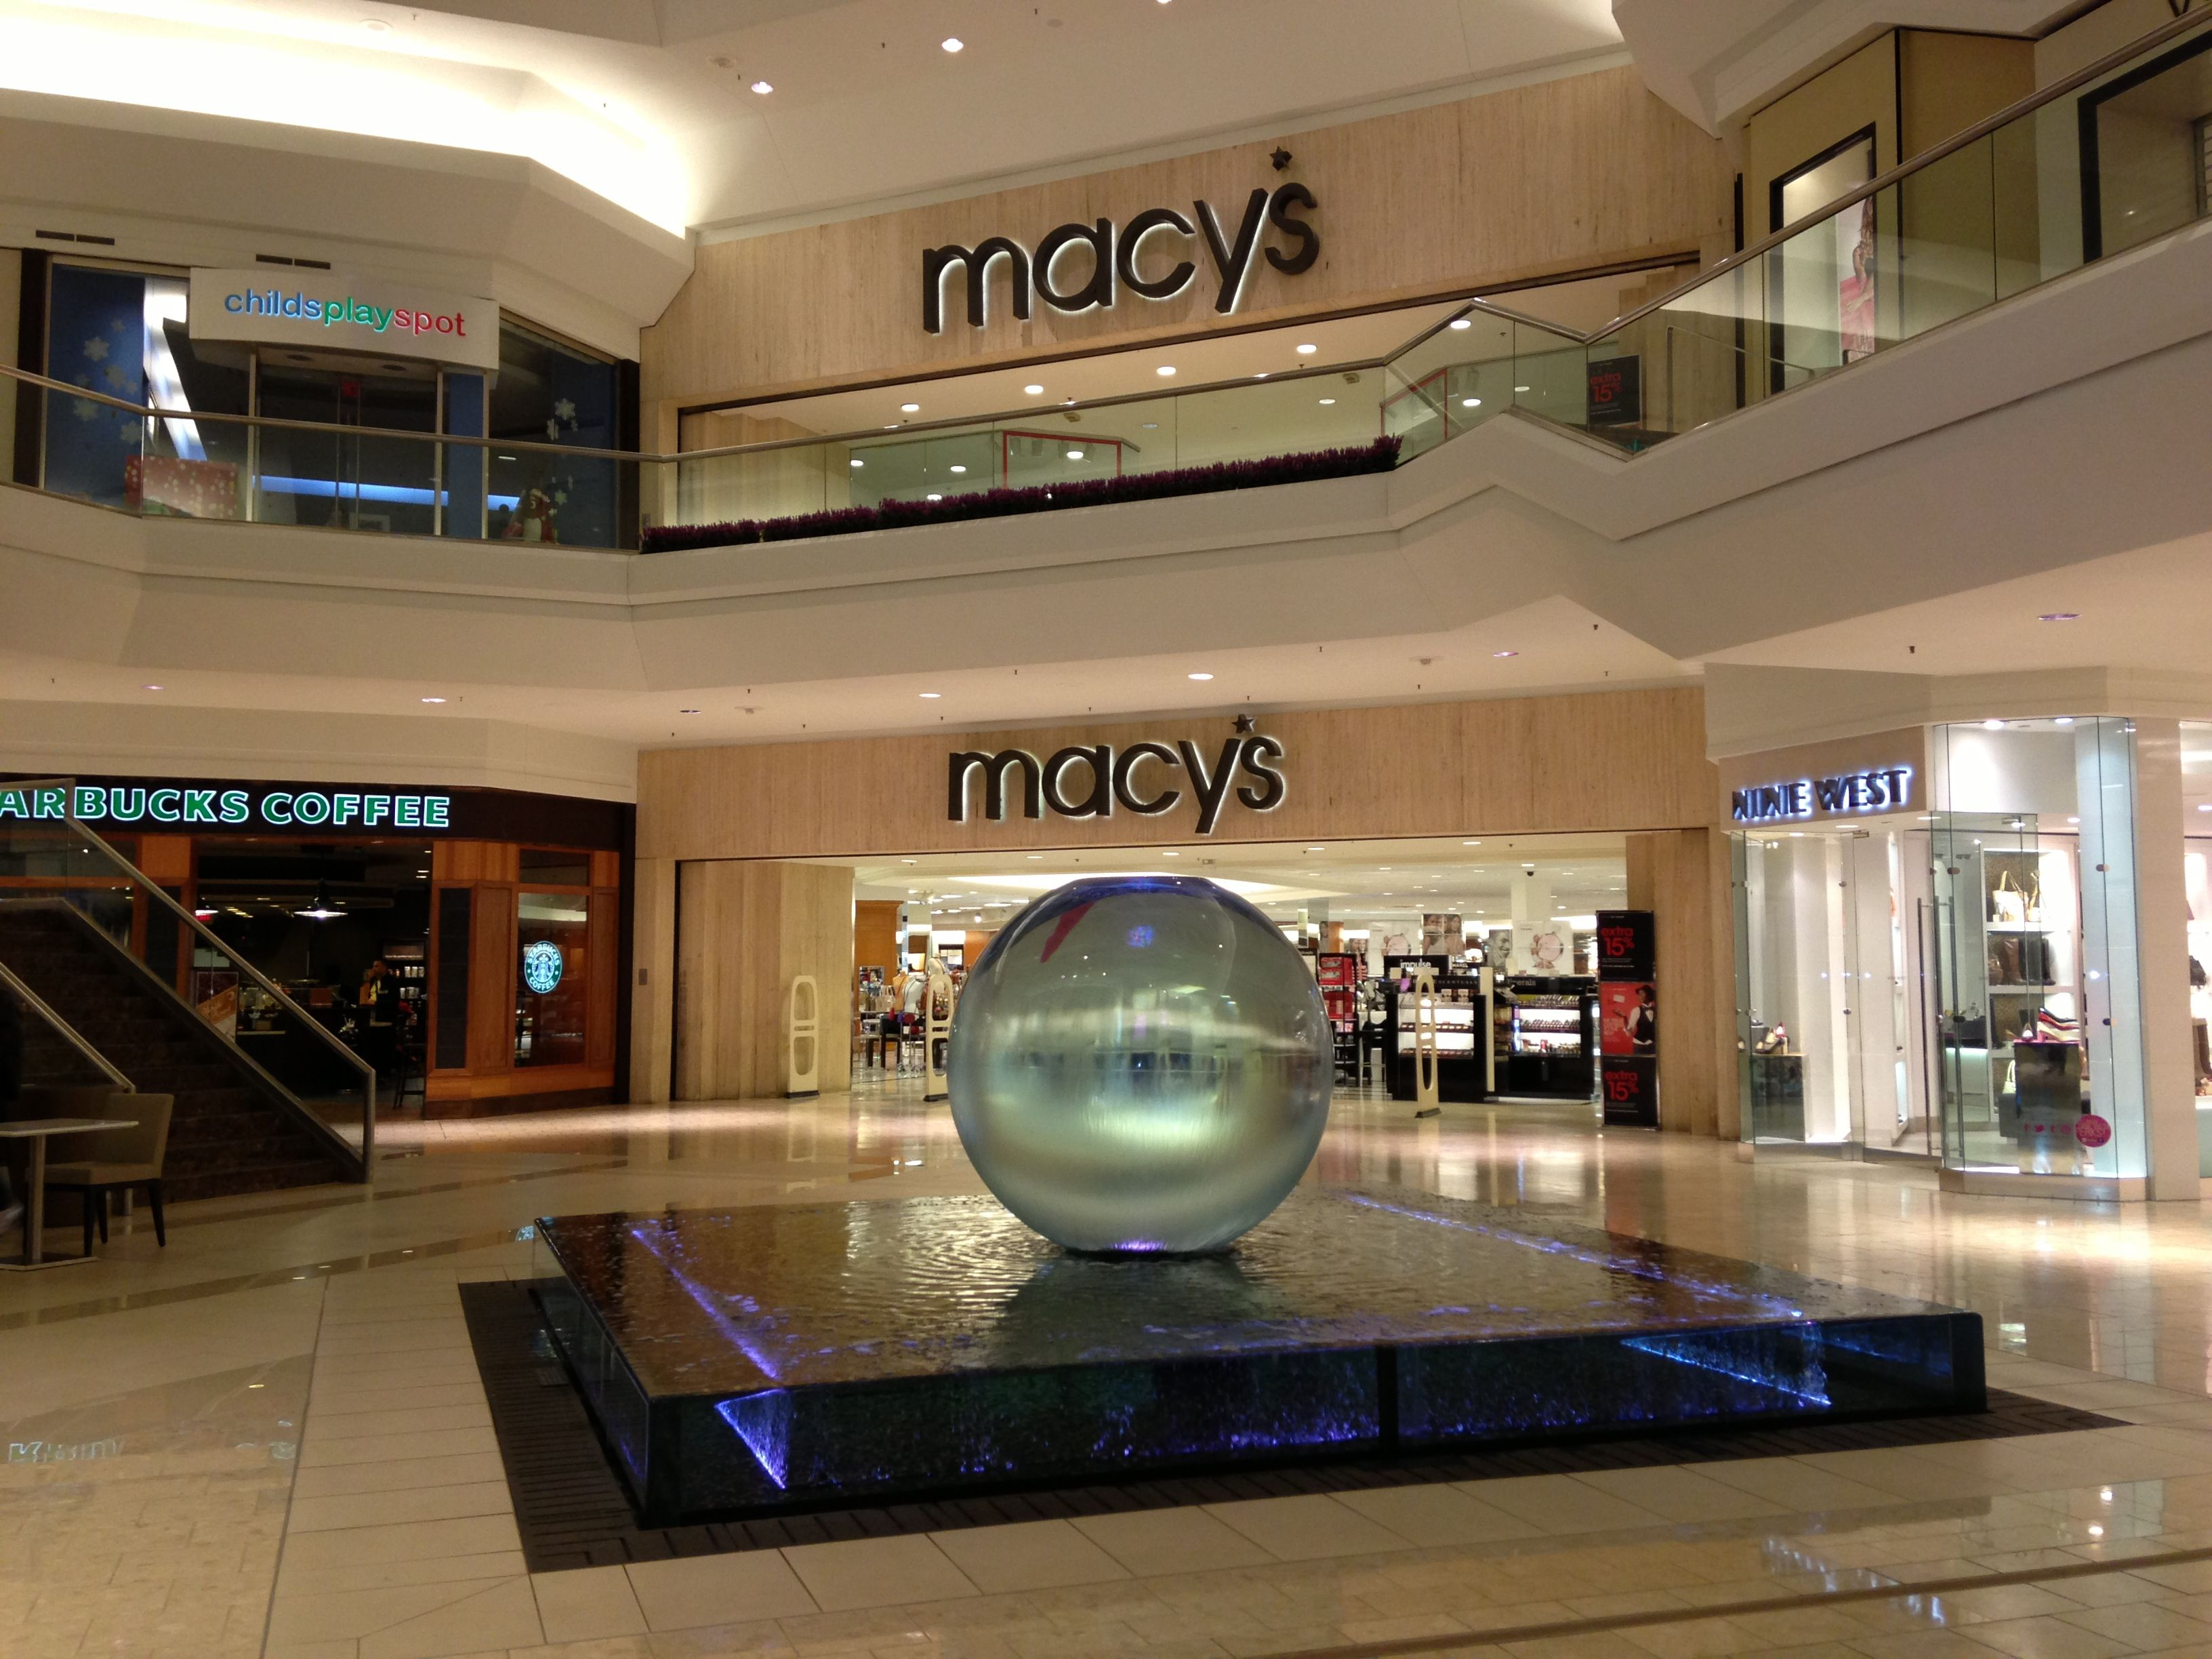 404a988bb01c2070bc0ea98b9ff3e2ec - Is There A Macy's In Jersey Gardens Mall